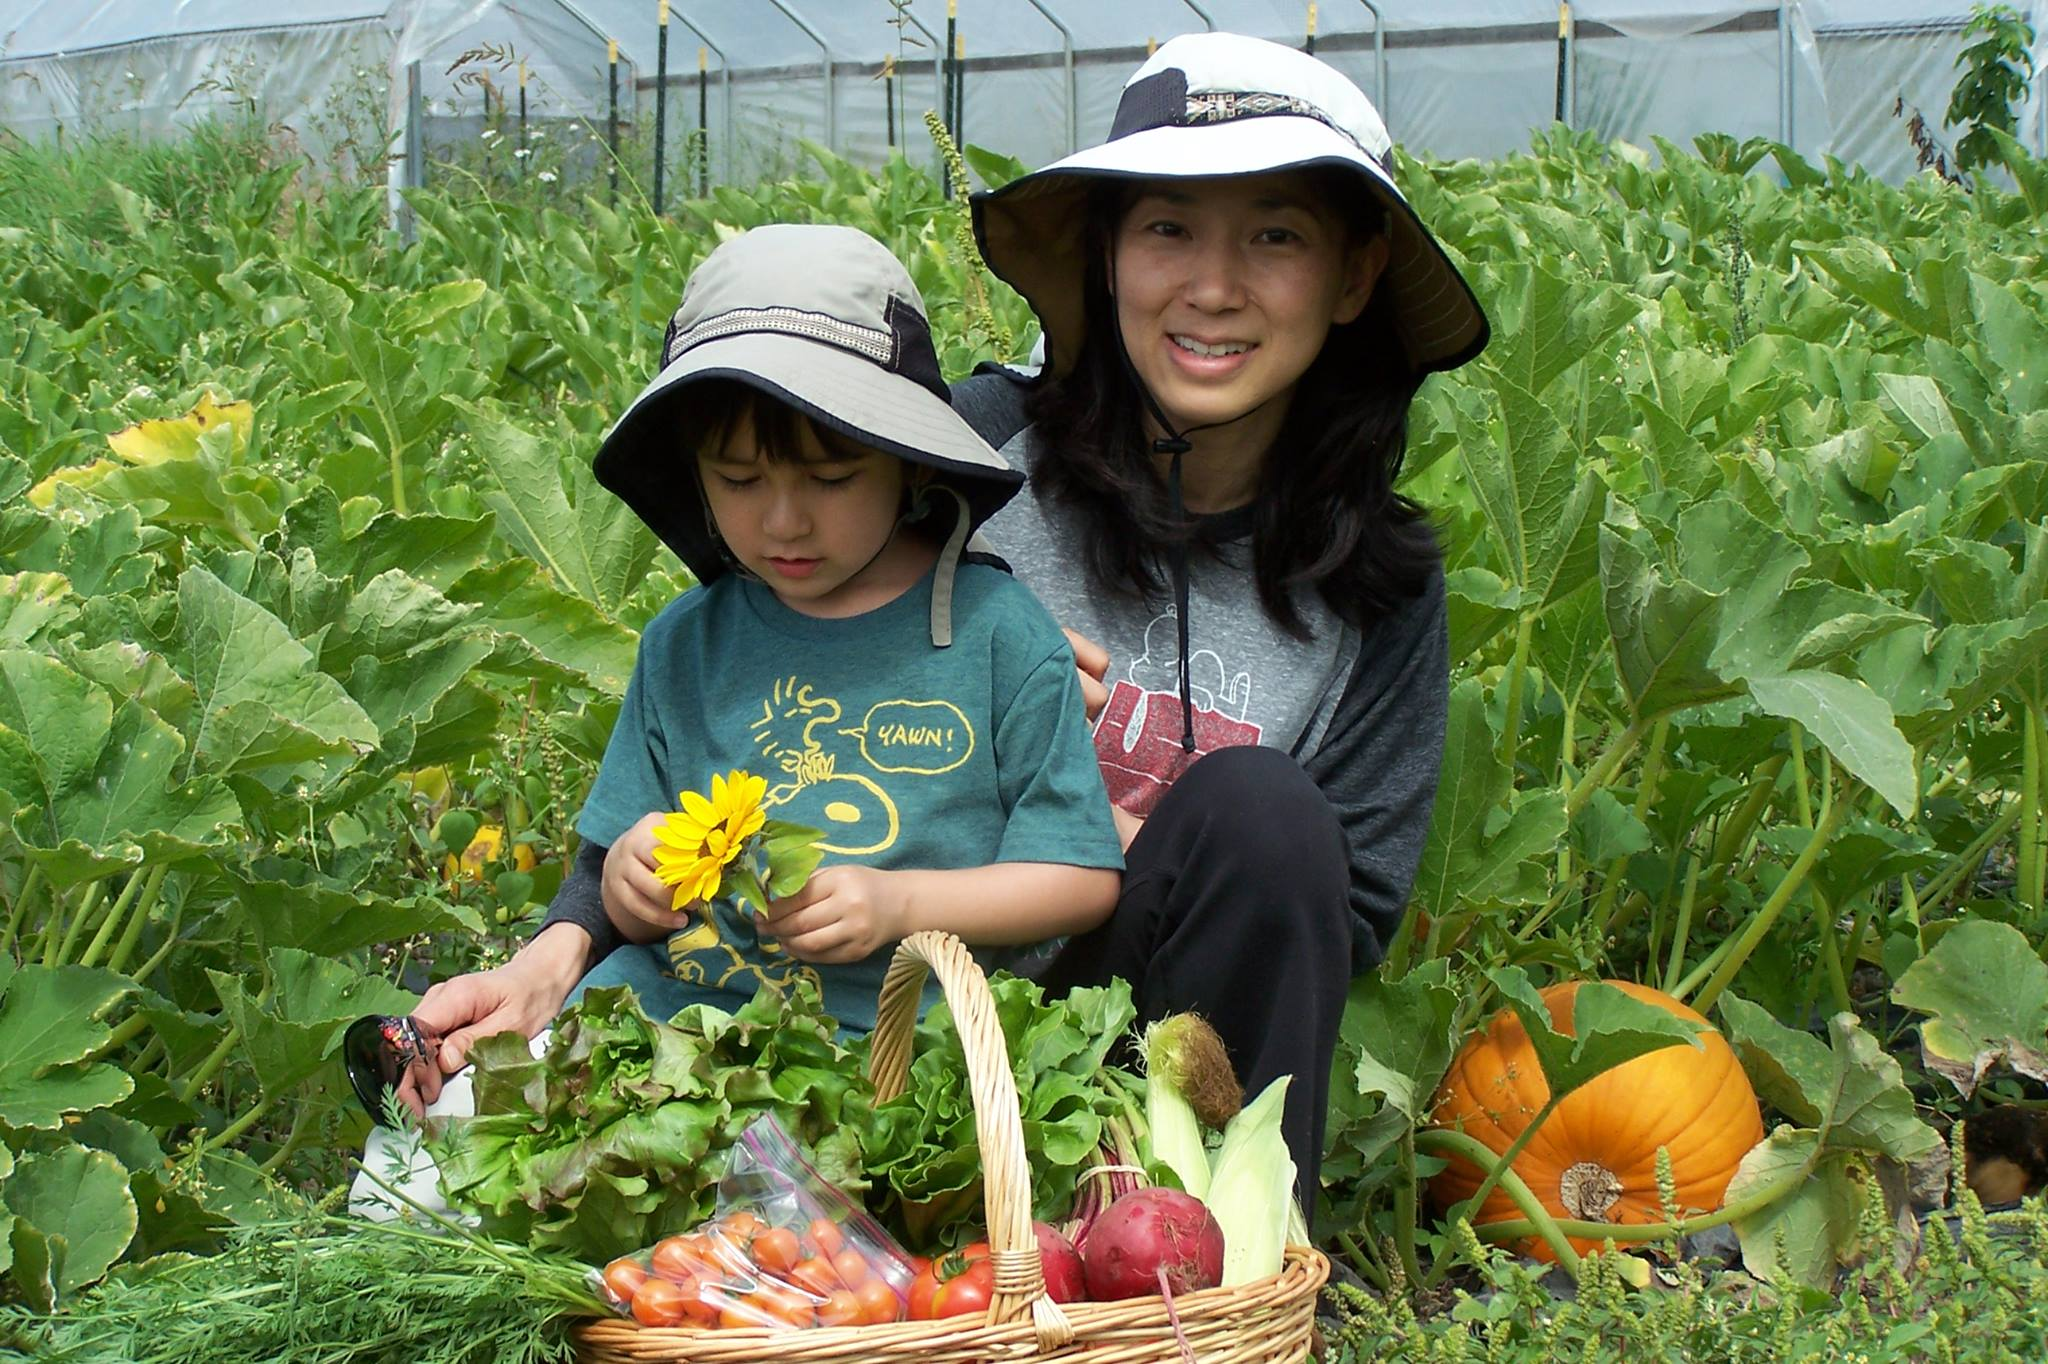 Mother and son sitting in pumkin patch with harvest basket